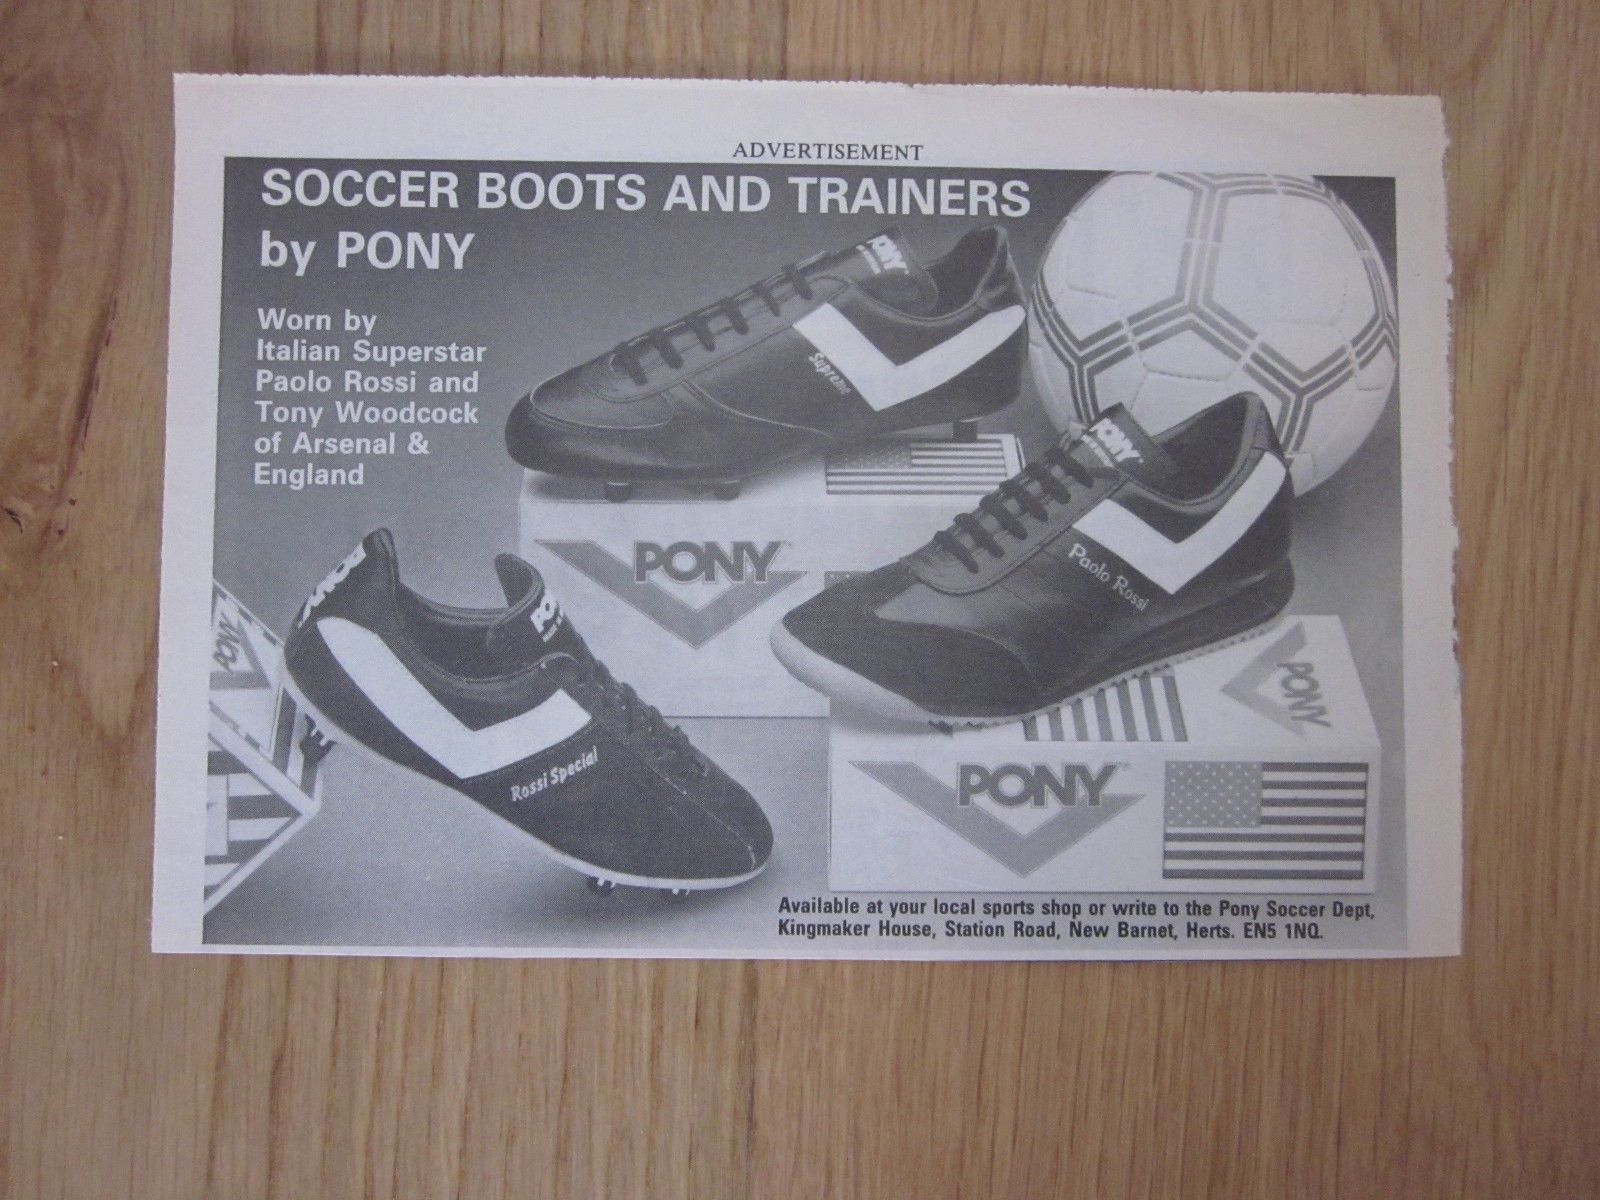 0bb87cb0ffd PONY Football Boots - Original vintage magazine advert